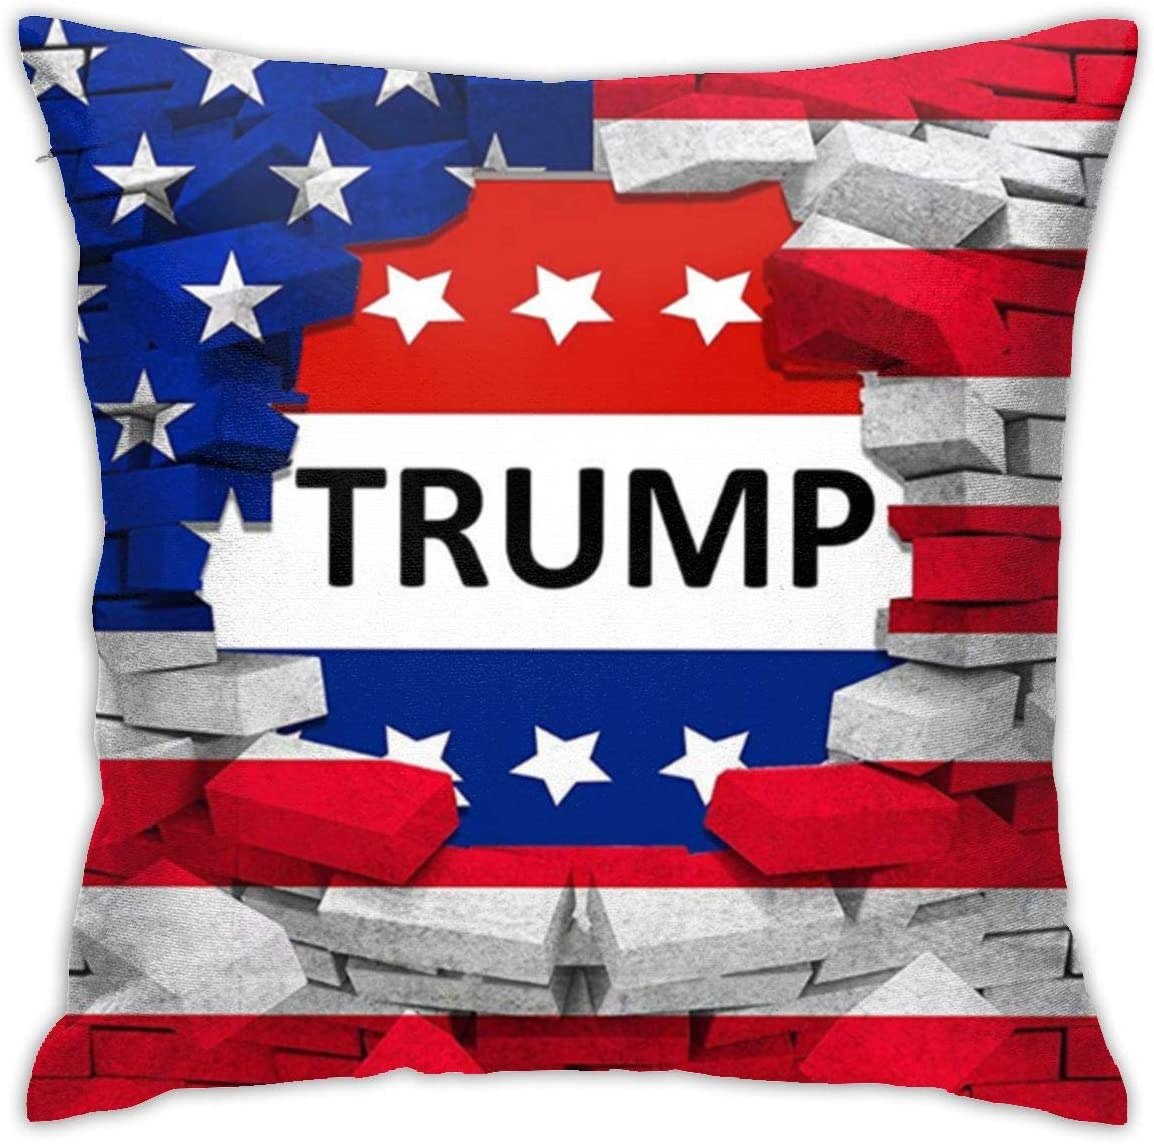 ULQUIEOR American USA Trump Flag Throw Pillow Covers Square Decorative Pillow Case Cushion Case for Sofa Couch Bed Car Gift 18x18 Inch